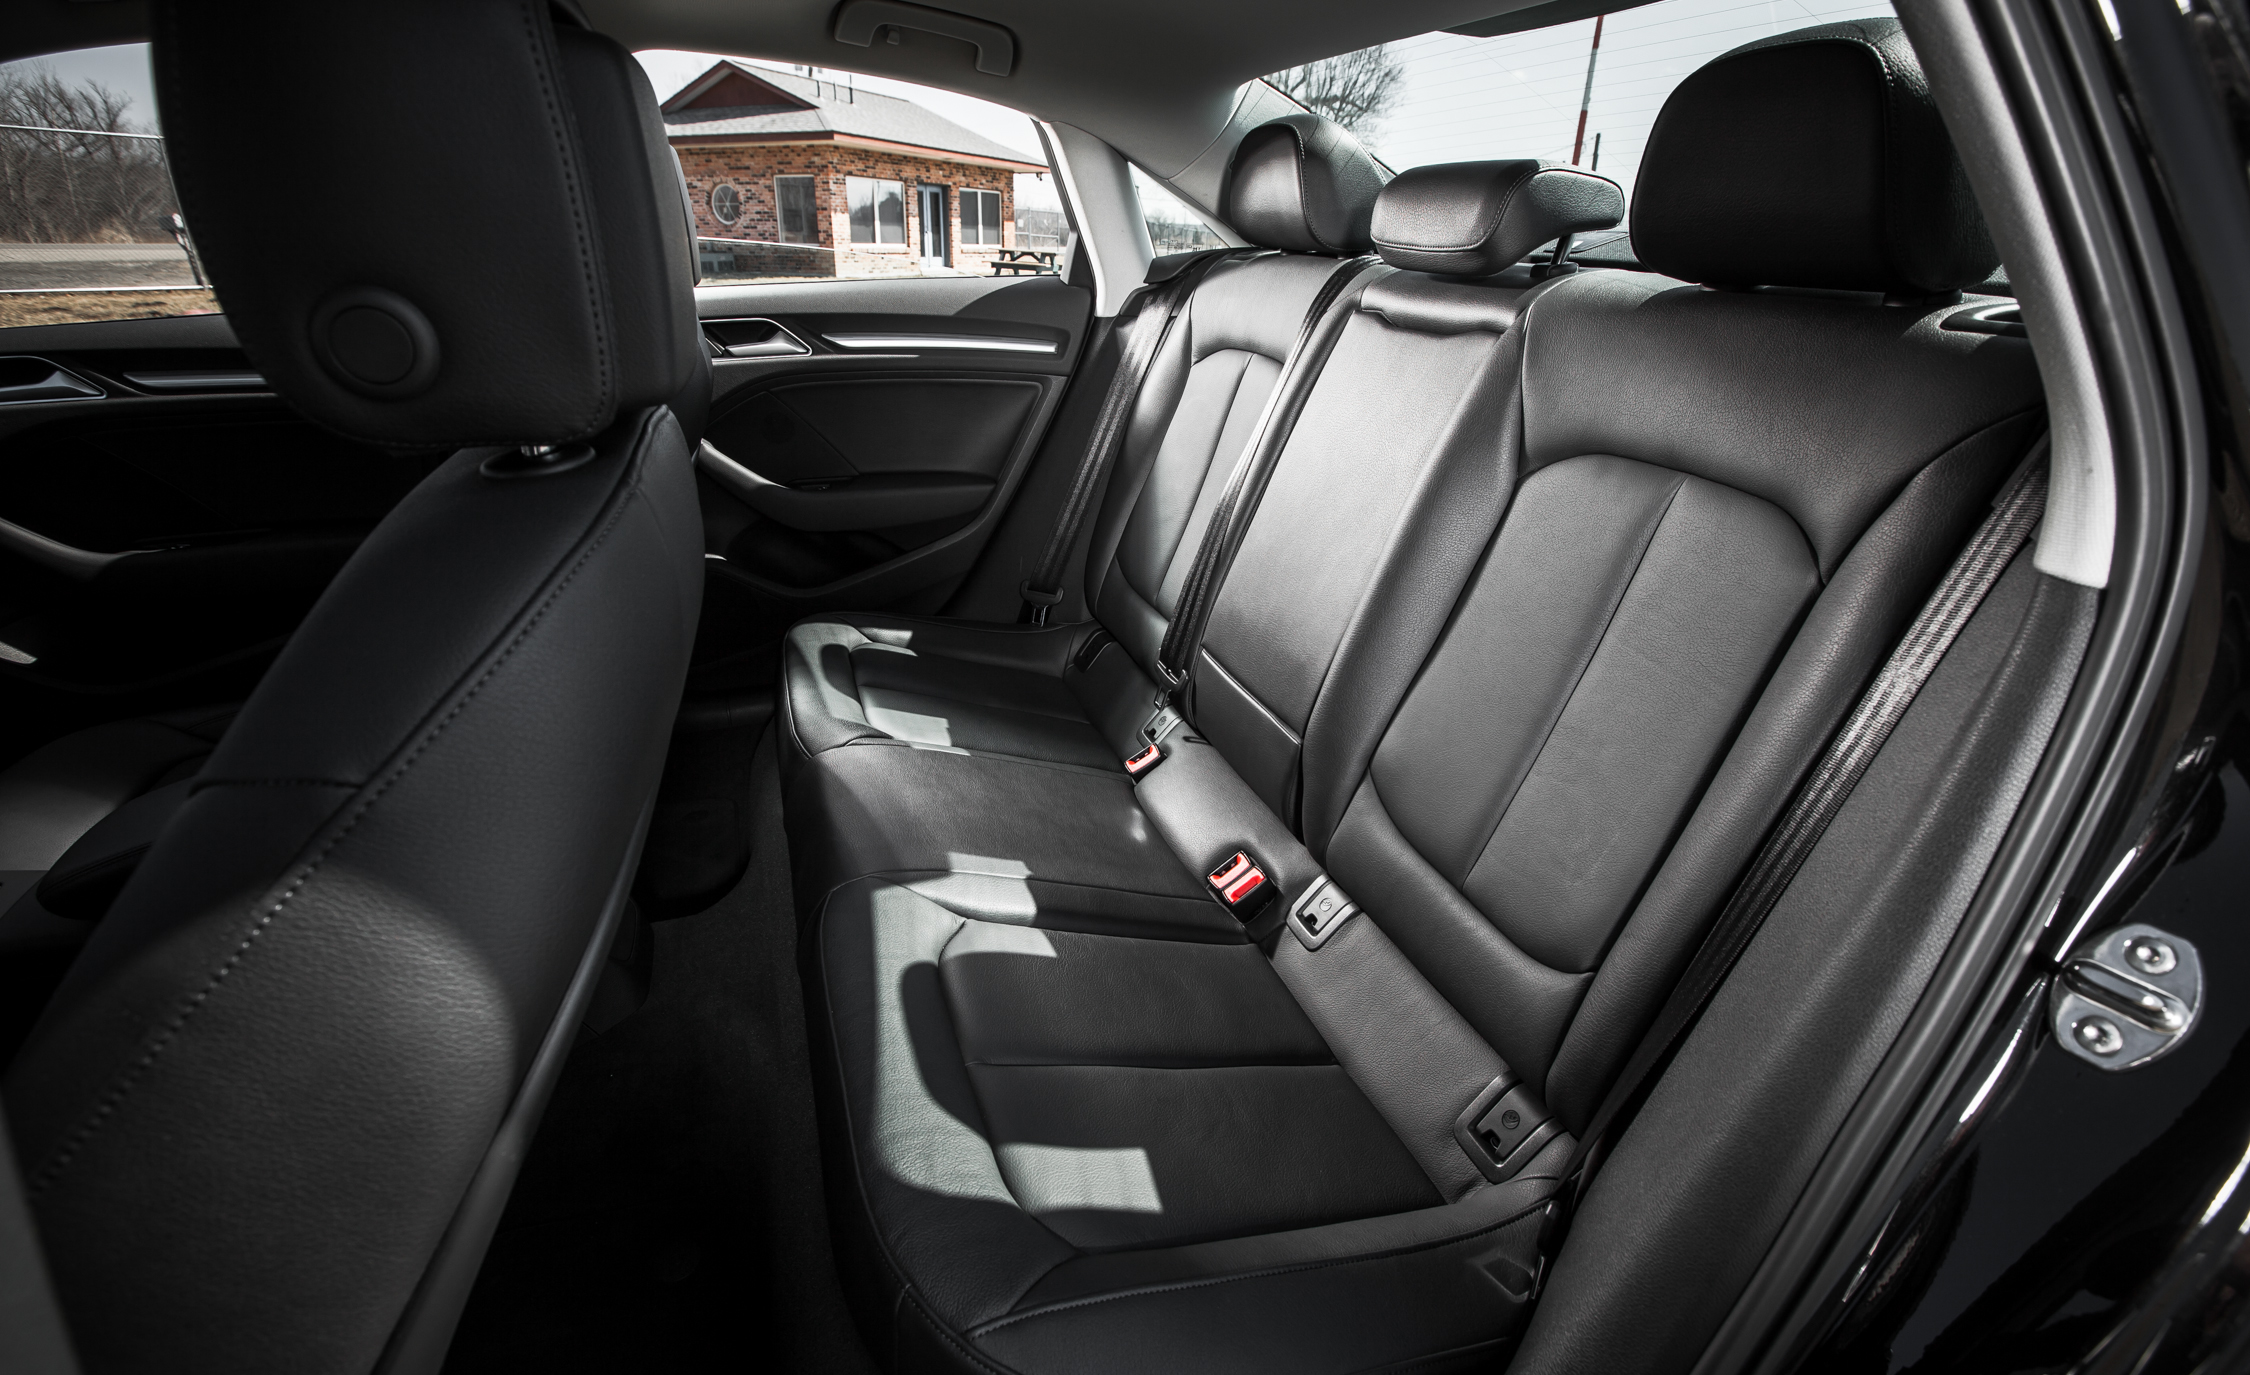 2015 Audi A3 TDI Interior Seats Rear (Photo 37 of 50)